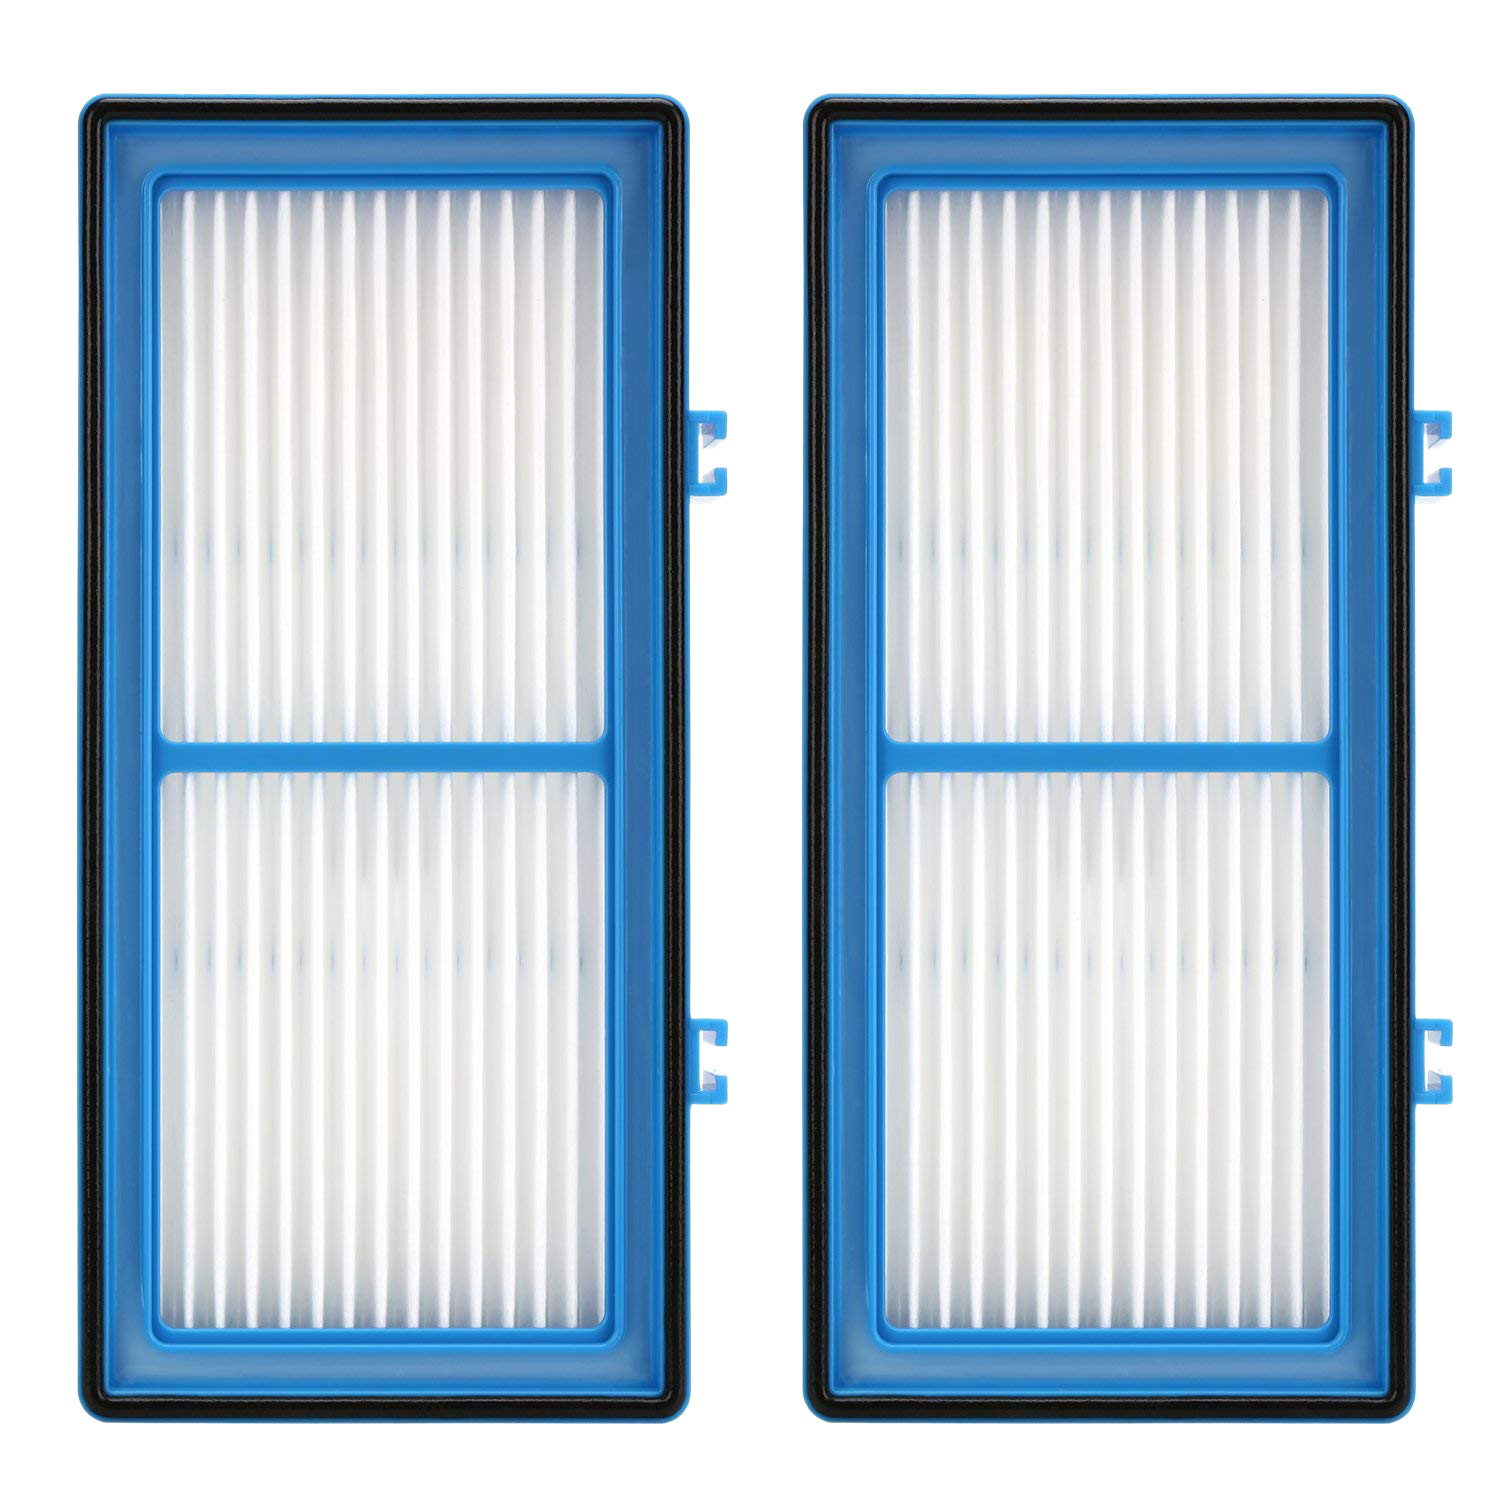 2 Pack Replacement Filter Compatible for Holmes Hepa Type Total Air Filter, HAPF30AT, Holmes Air Purifier Filter AER1 Series 2 Pack Replacement Filter Compatible for Holmes Hepa Type Total Air Filter, HAPF30AT, Holmes Air Purifier Filter AER1 Series